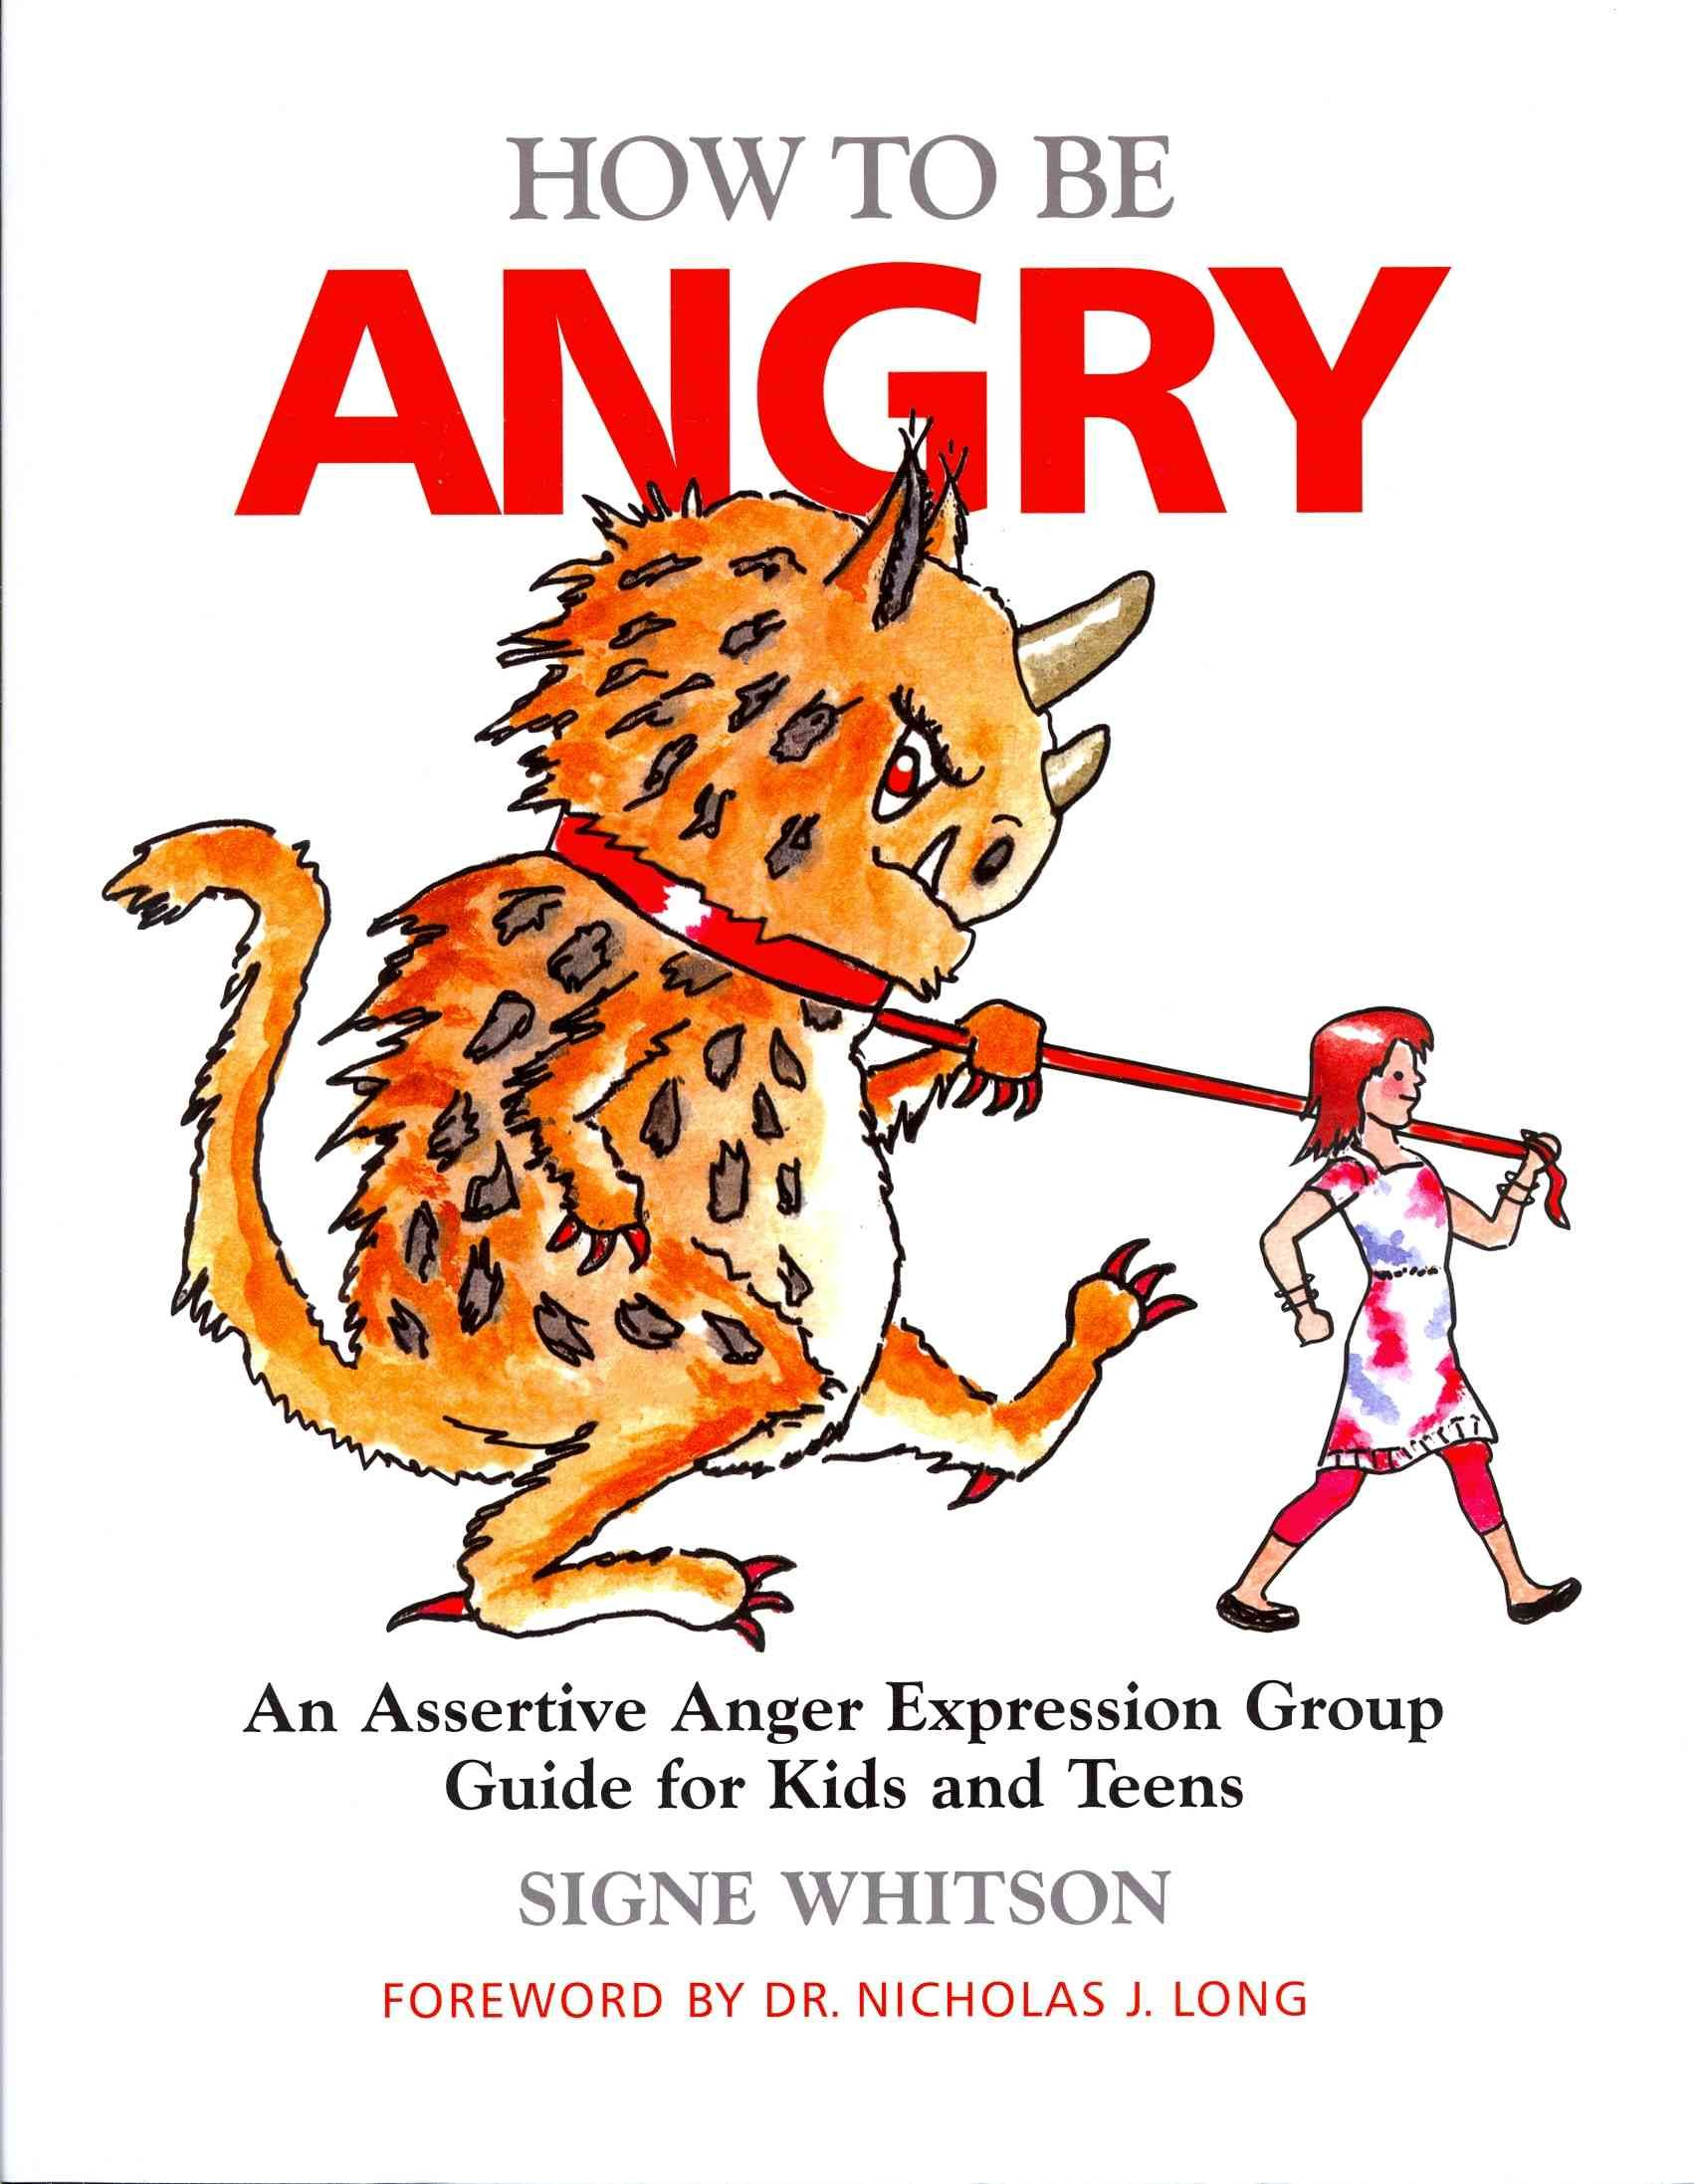 How To Be Angry A Assertive Anger Expression Group Guide